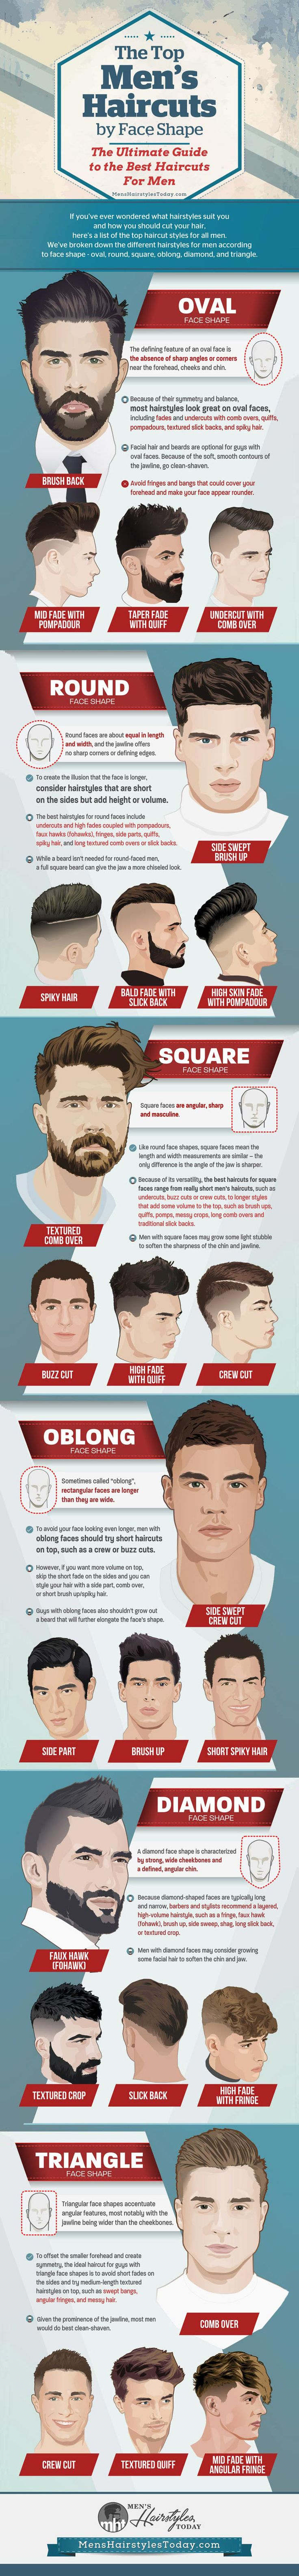 Best Mens Hairstyle According to Face Shape Infographic. Topic: male haircut, hair style for guys, men's fashion, grooming.